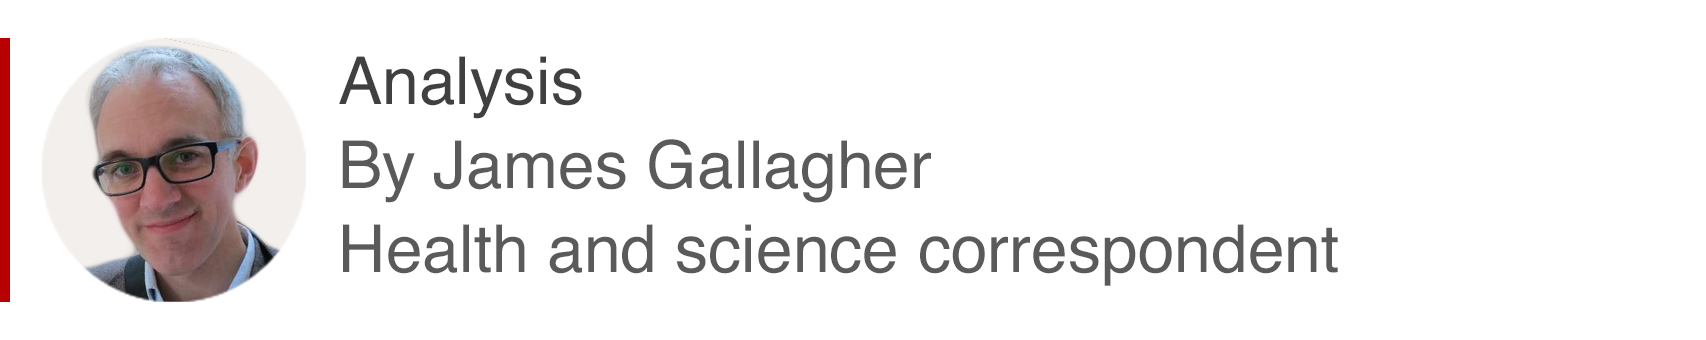 Analysis box by James Gallagher, health and science correspondent